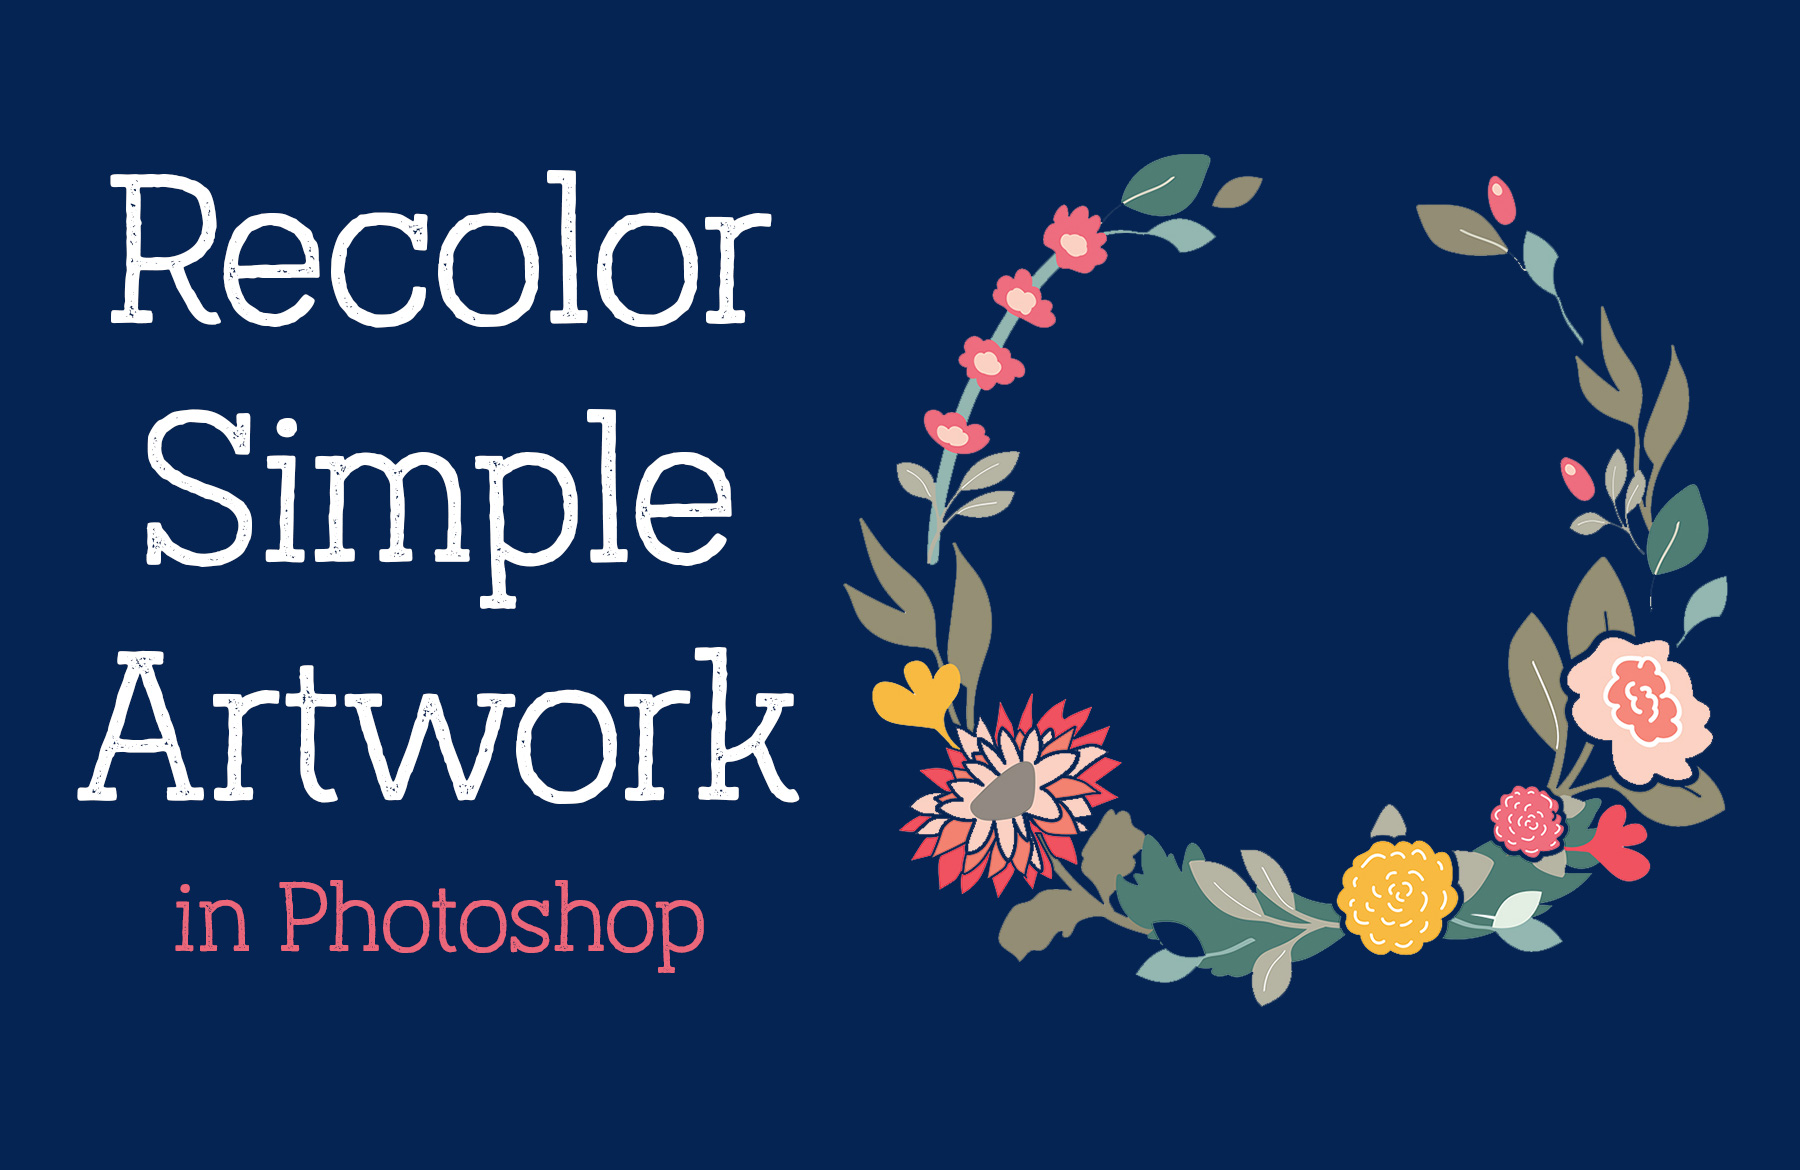 How to Select and Change Colors in Photoshop - YouTube